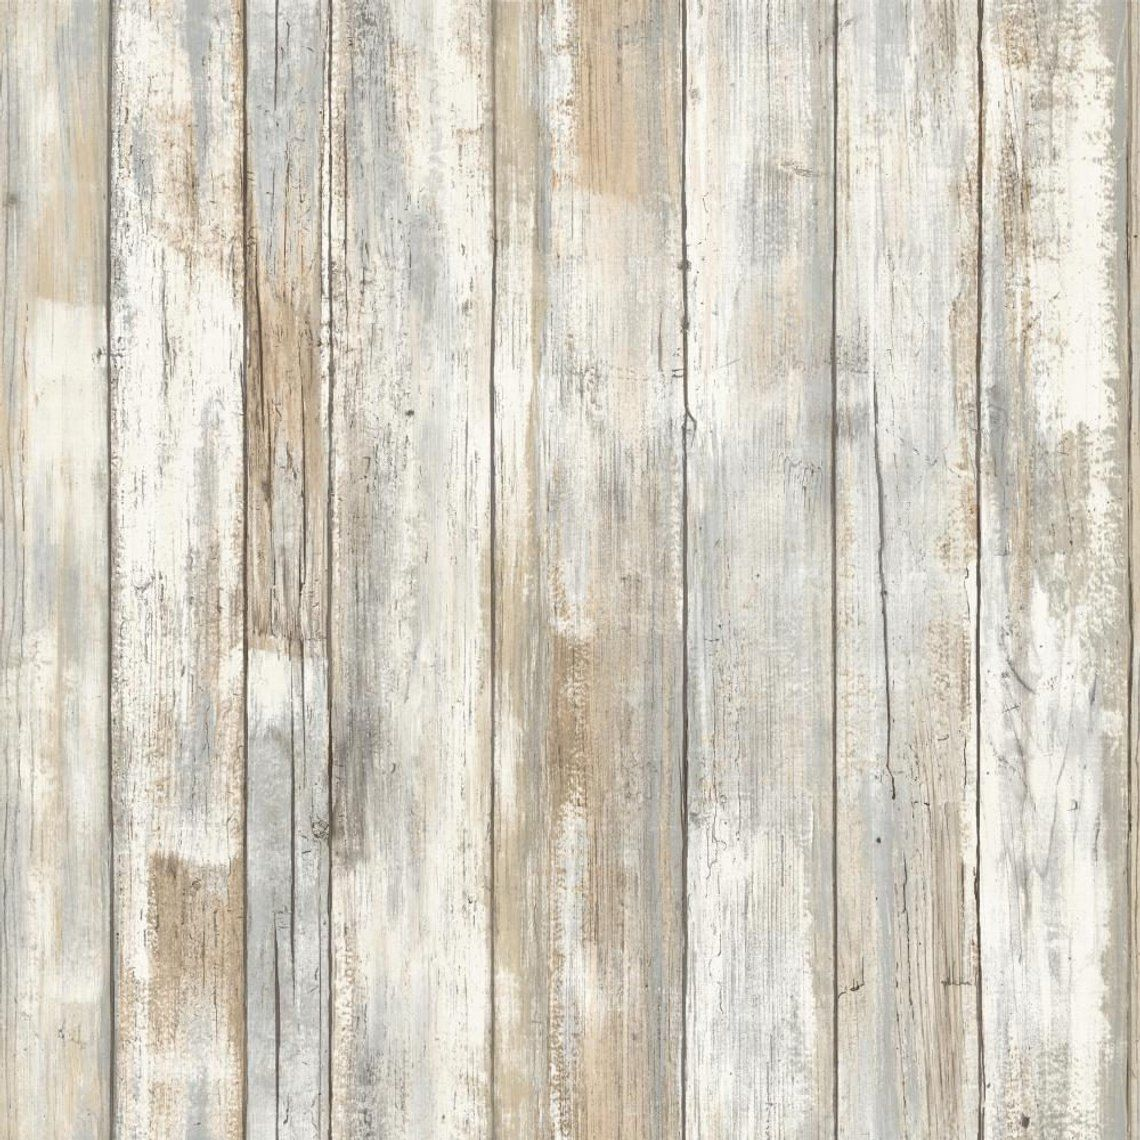 47+ White wood peel and stick wallpaper ideas in 2021